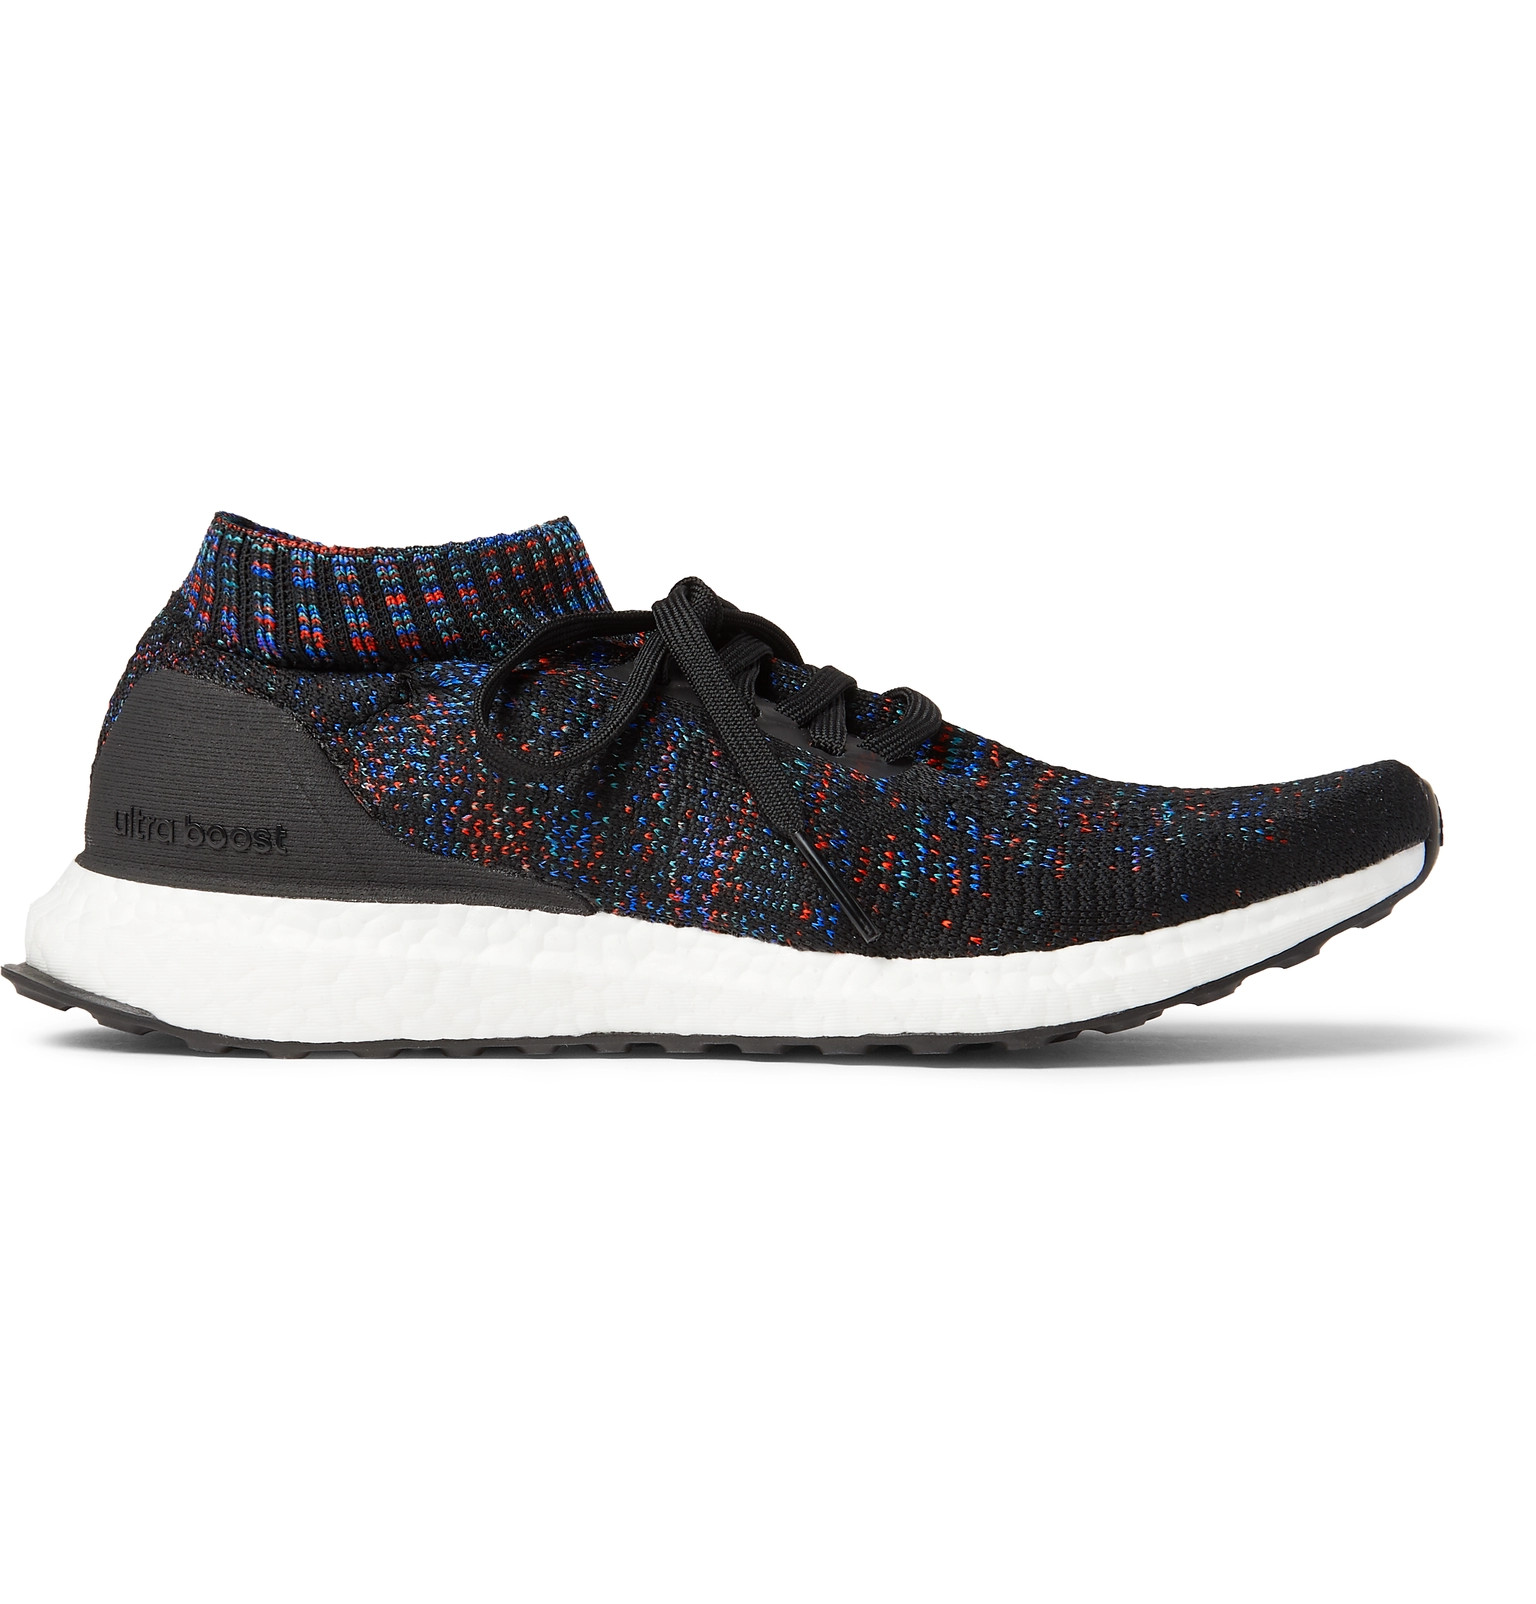 Adidas Sport UltraBOOST Uncaged Rubber Trimmed